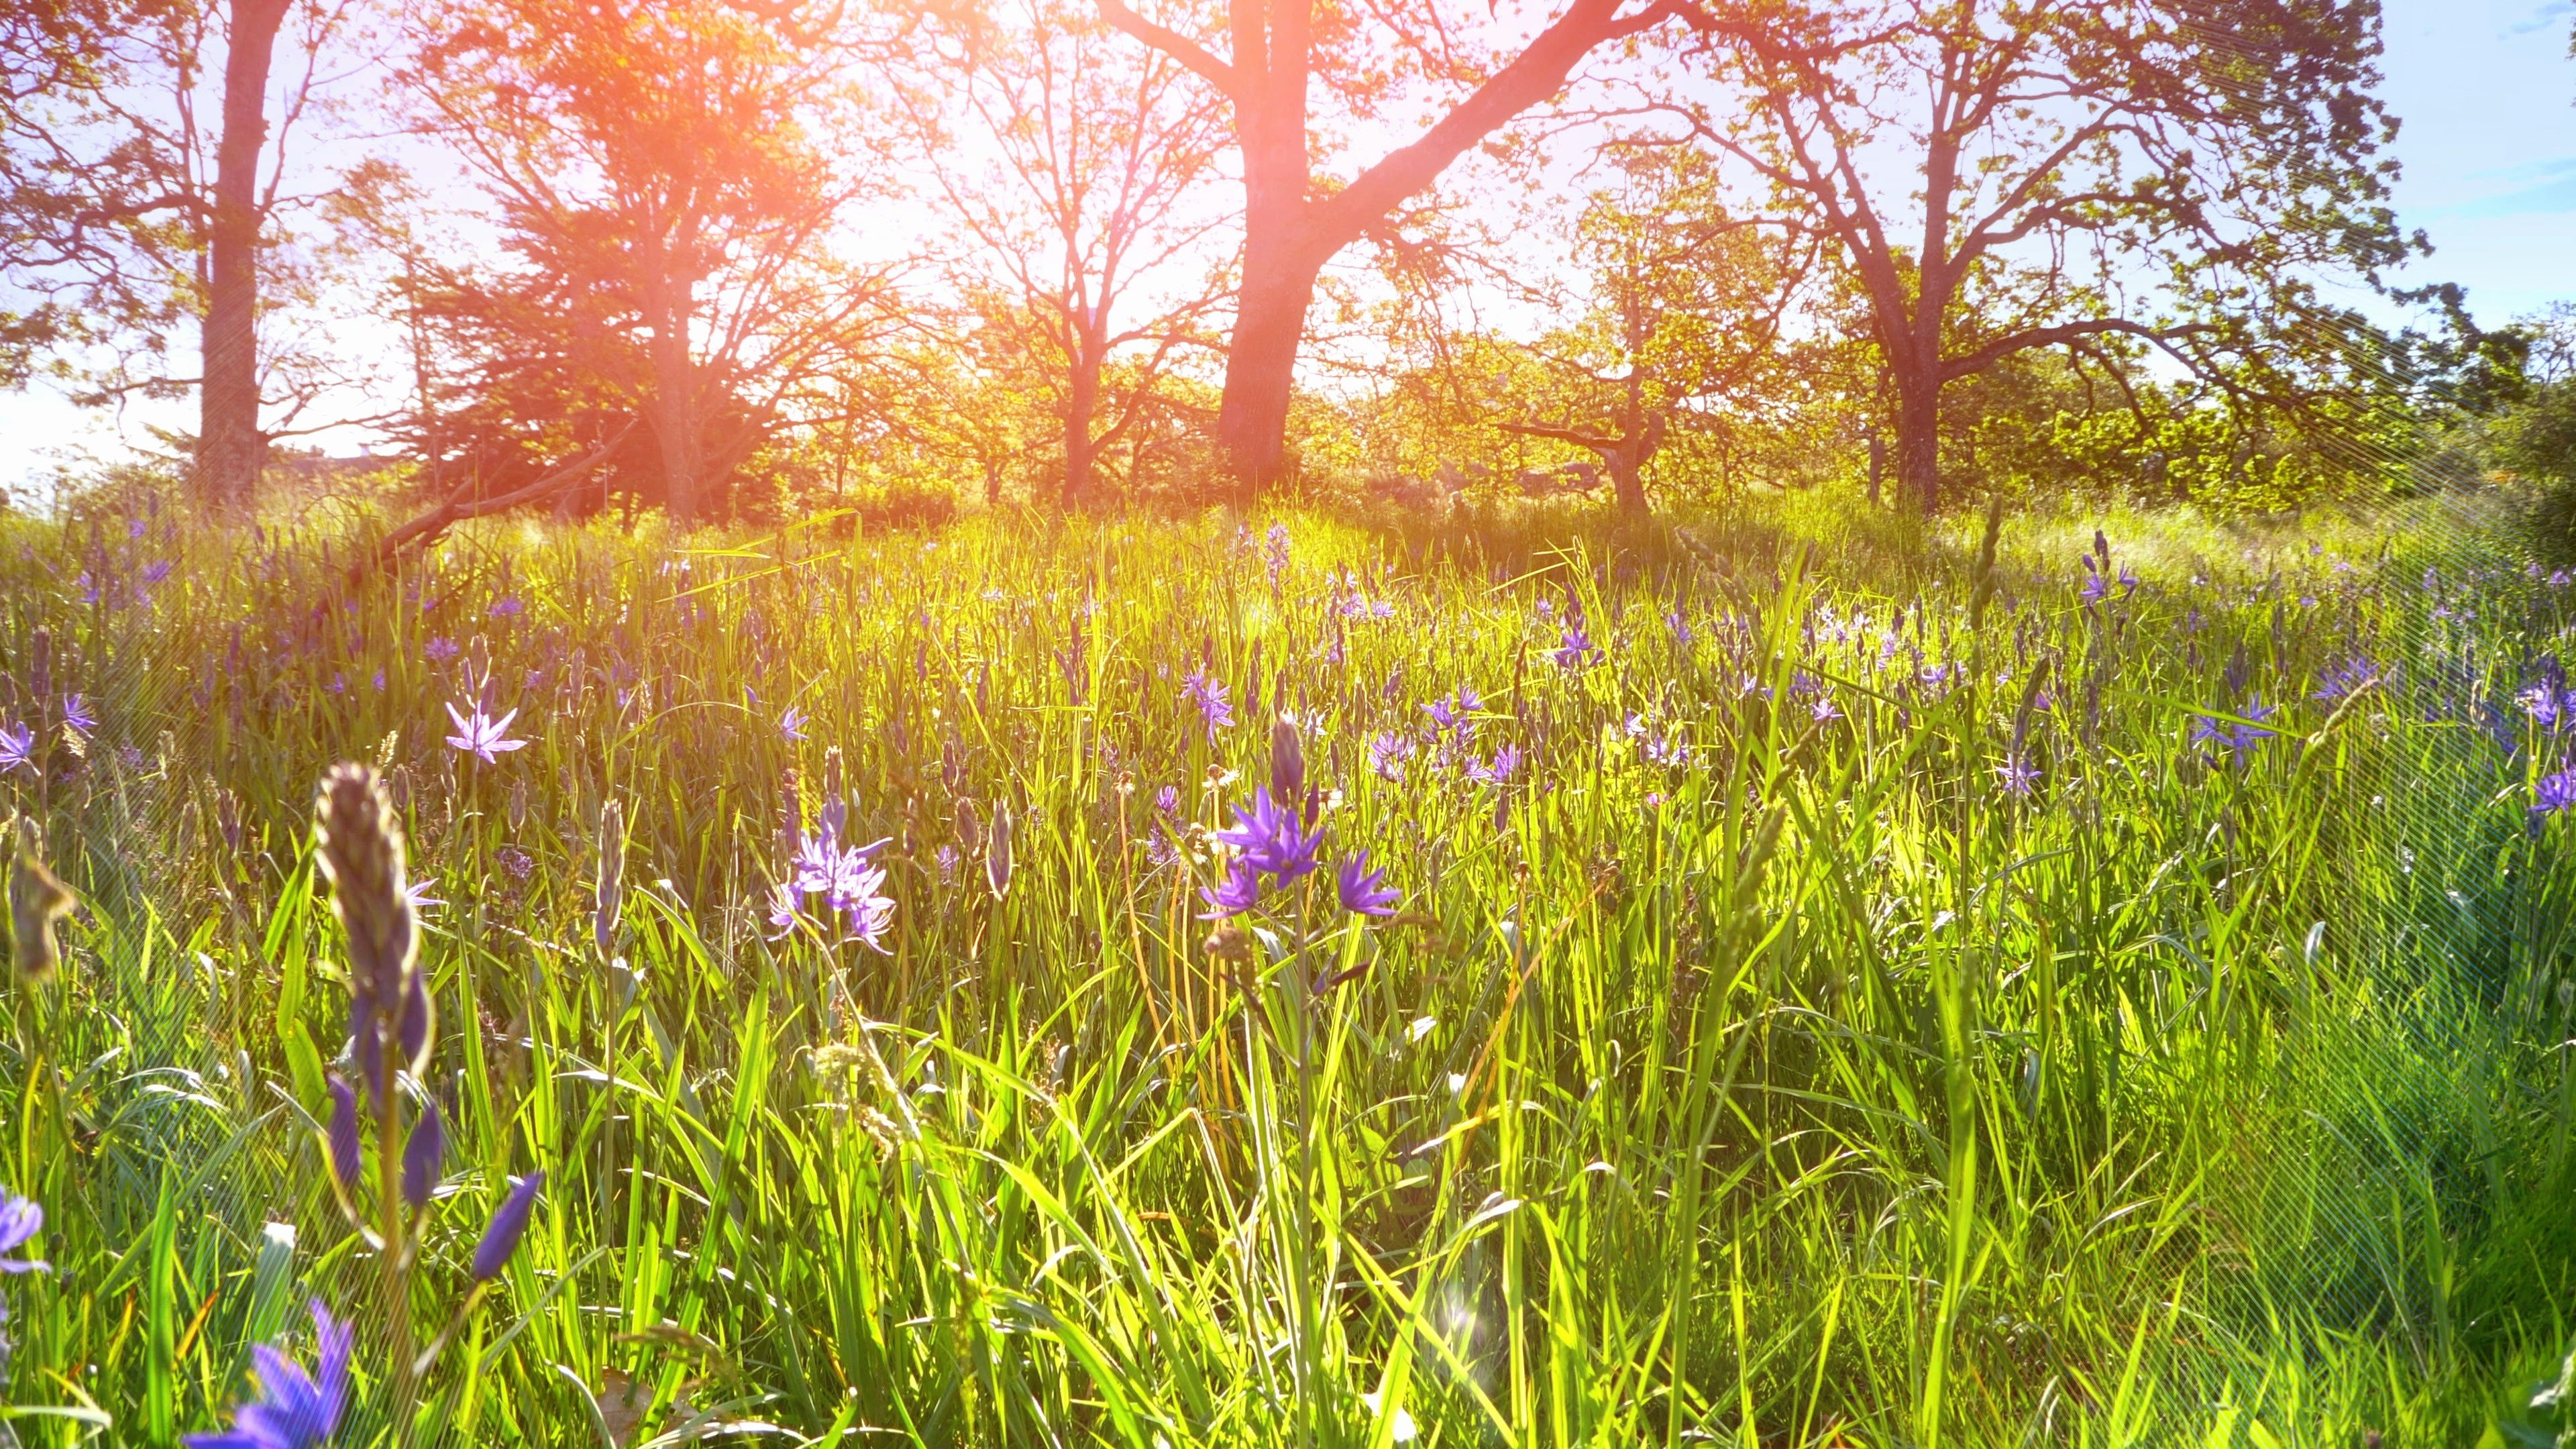 Beautiful Spring Flowers Meadow Landscape Background Nature Field Sun Sky Grass Stock Footage Meadow Landscape Back Landscape Background Spring Flowers Nature